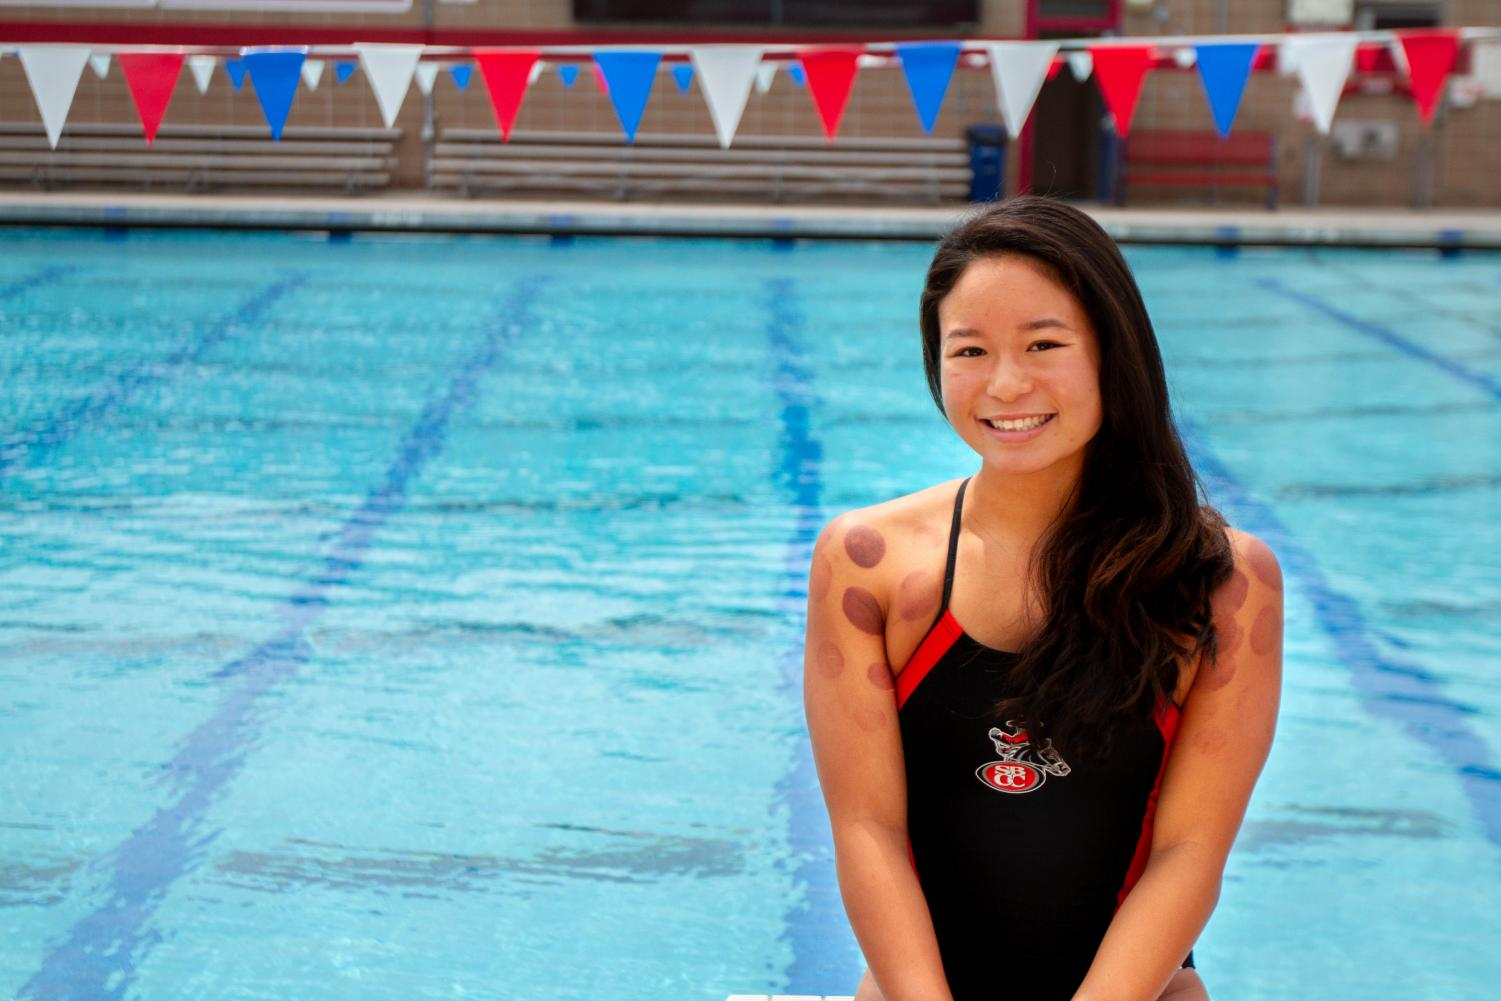 Kelee Shimizu, a freshman swimmer at Santa Barbara City College, competes in the freestyle for the Vaqueros who practice at the San Marcos High School pool. Shimizu uses cupping therapy to relieve muscle tightness before meets.